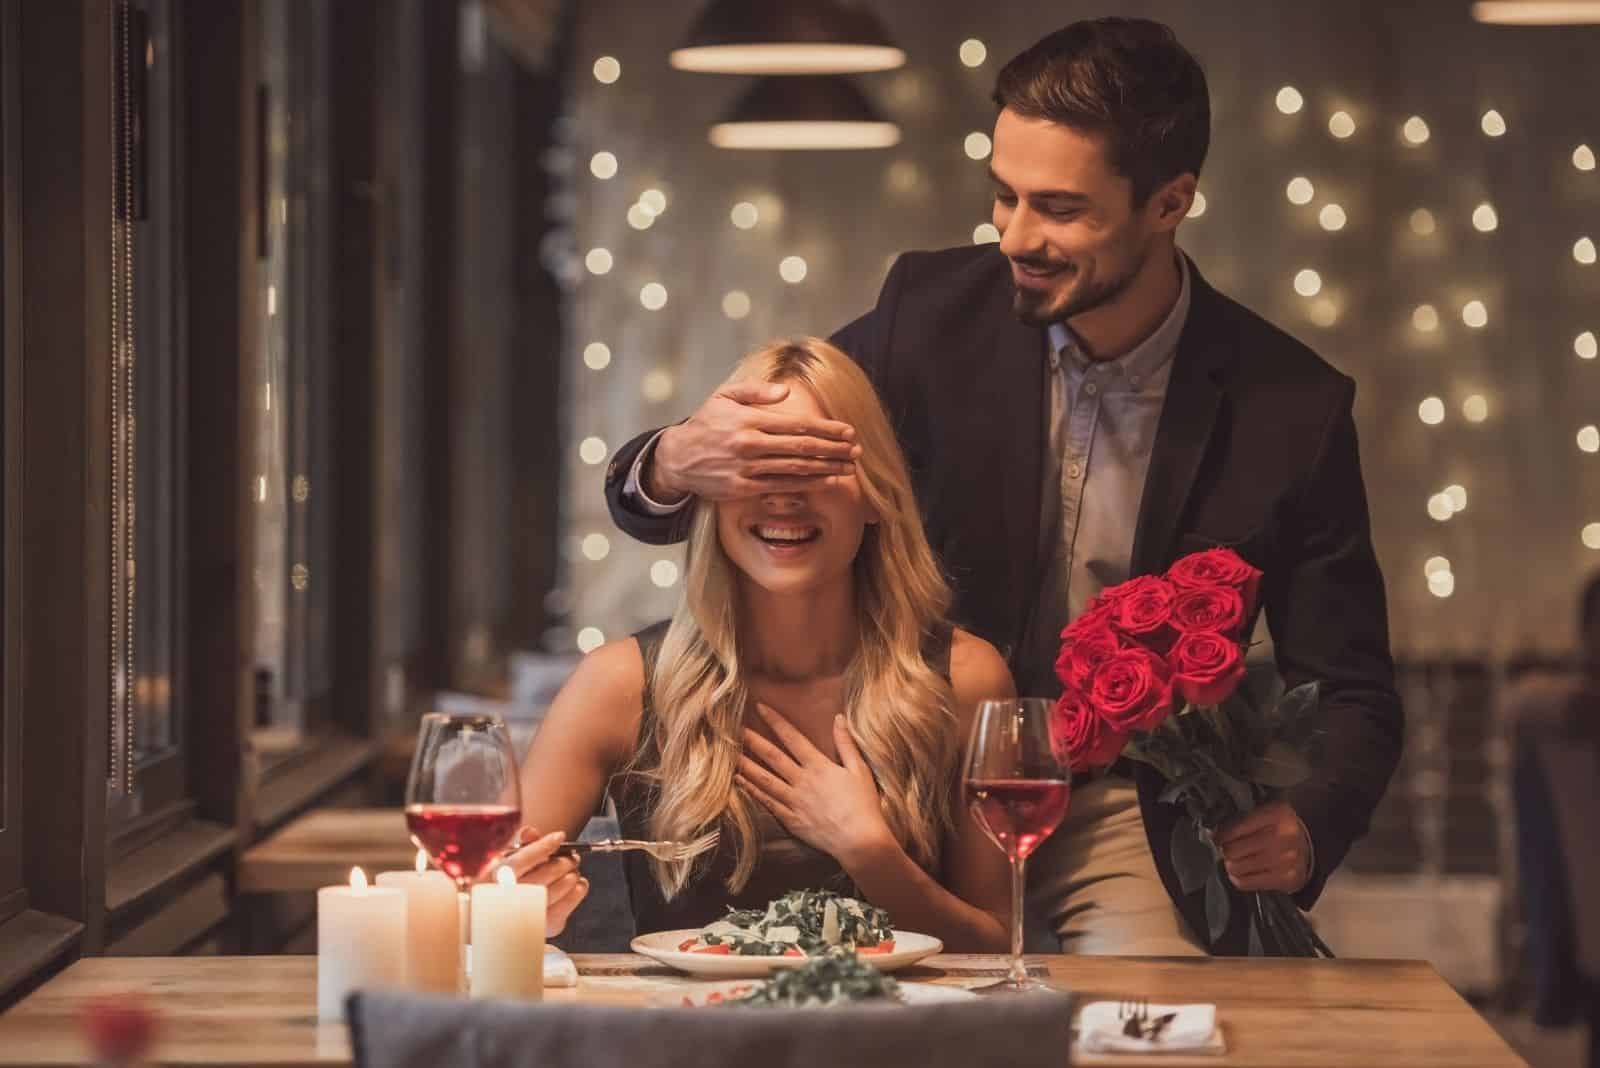 handsome elegant man bringing flowers and surprising his woman waiting in the restaurant